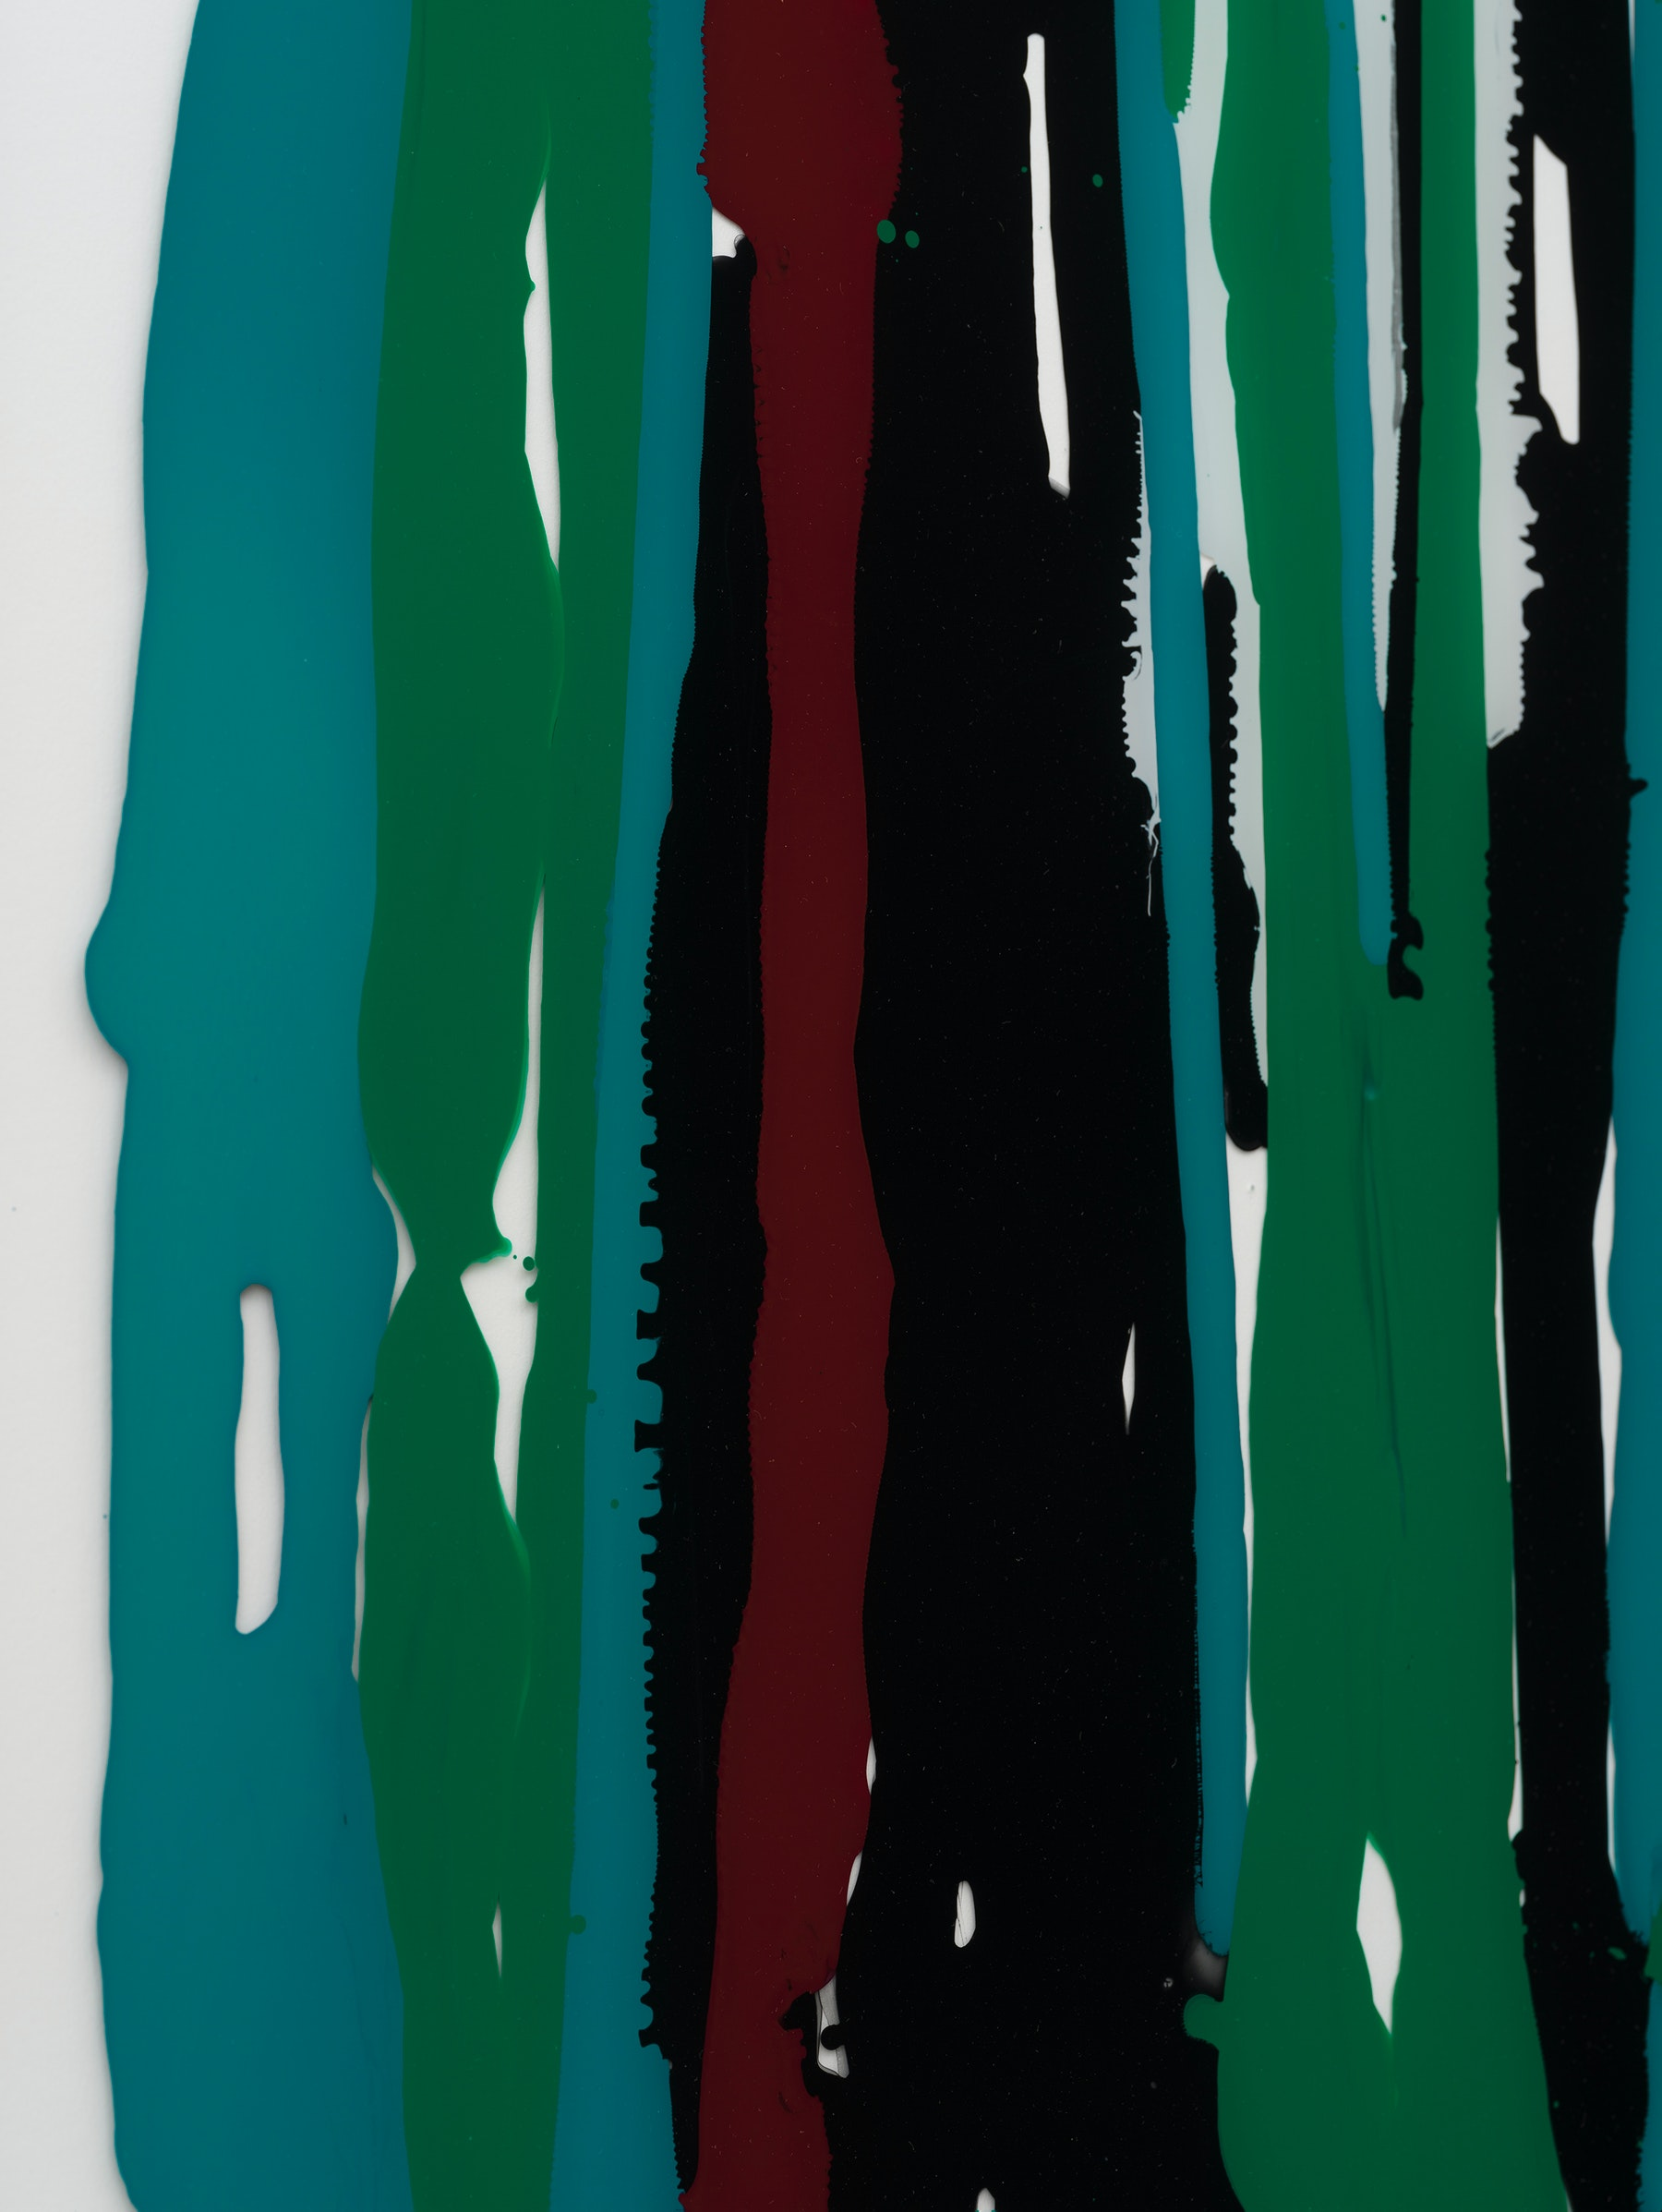 """Yunhee Min """"Untitled (Up and down with landscape),"""" 2021 Enamel, acrylic on starphire tempered glass with aluminum frame 40"""" x 40"""" [HxW] (101.6 x 101.6 cm) Inventory #MIN359 Courtesy of the artist and Vielmetter Los Angeles Photo credit: Jeff McLane"""